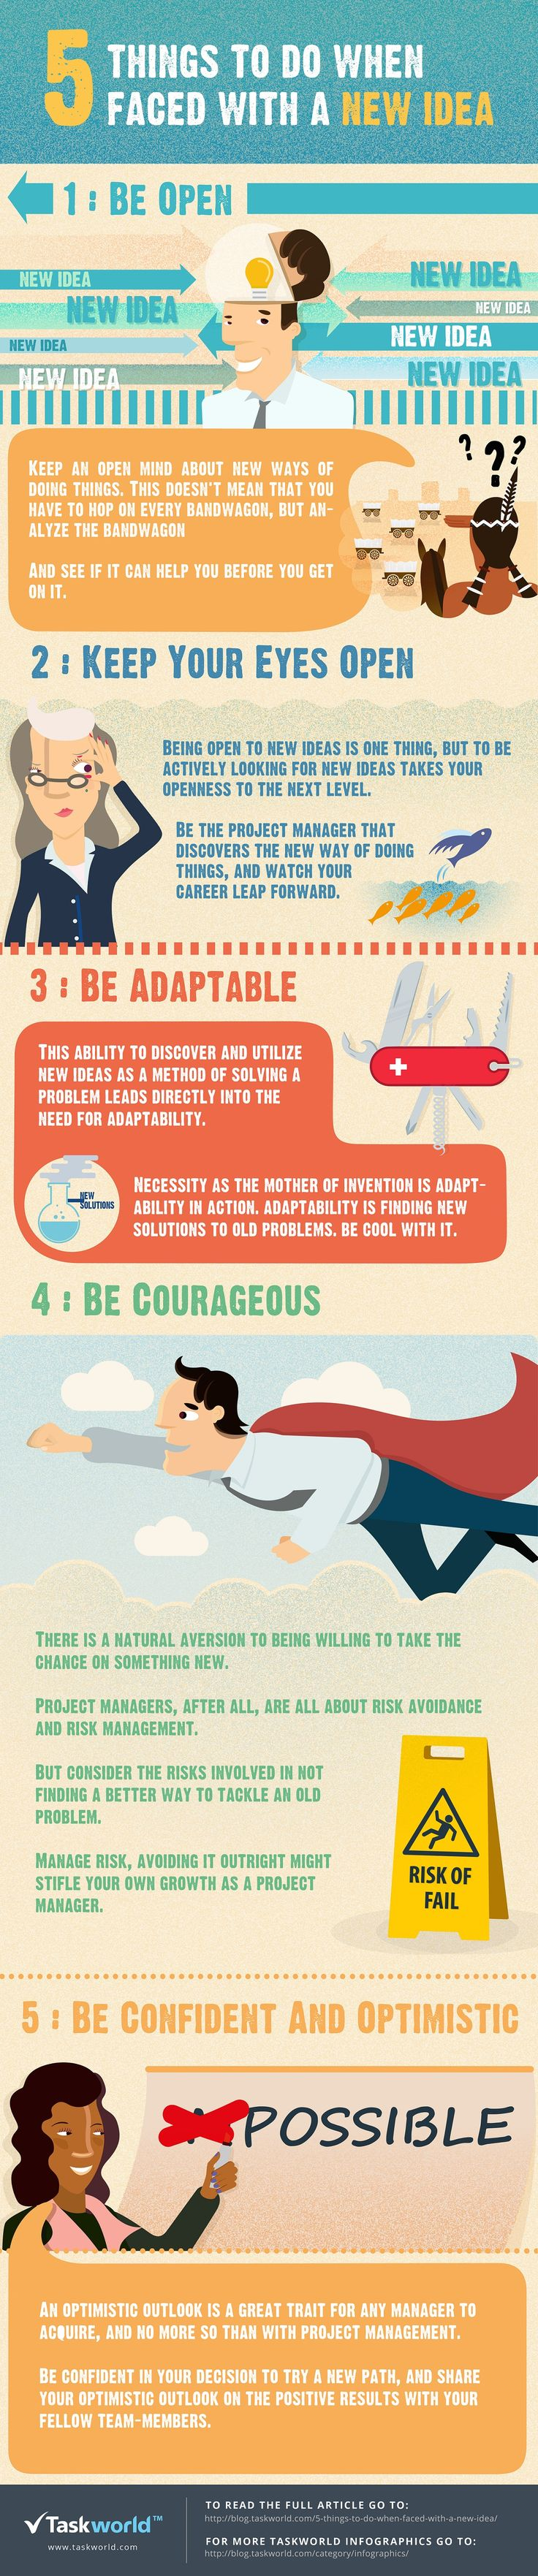 5 Things to do When Faced With a New Idea #infographic